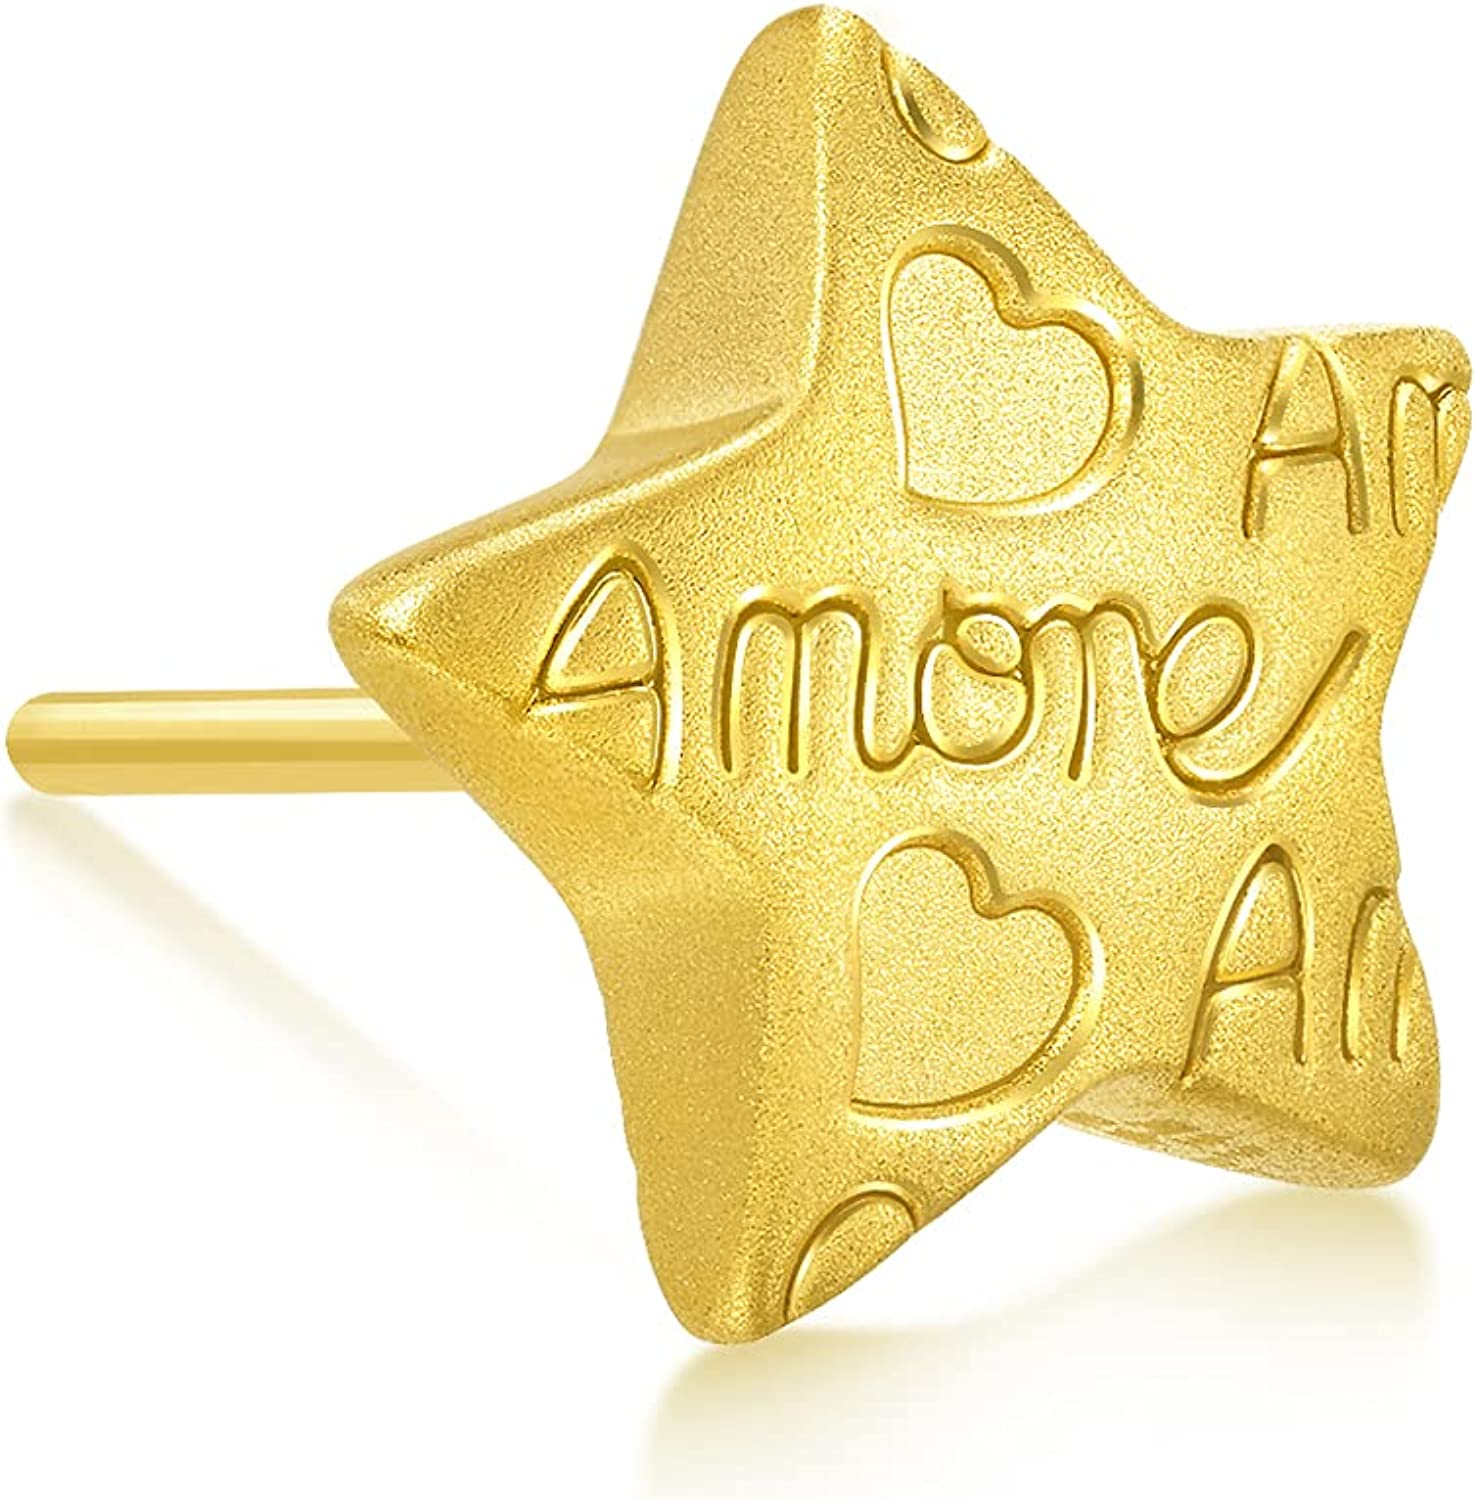 Chow Sang Sang 999 24K Gold Star with message 'Amore' Single Earring 92645E (Sold Single Not Pair)